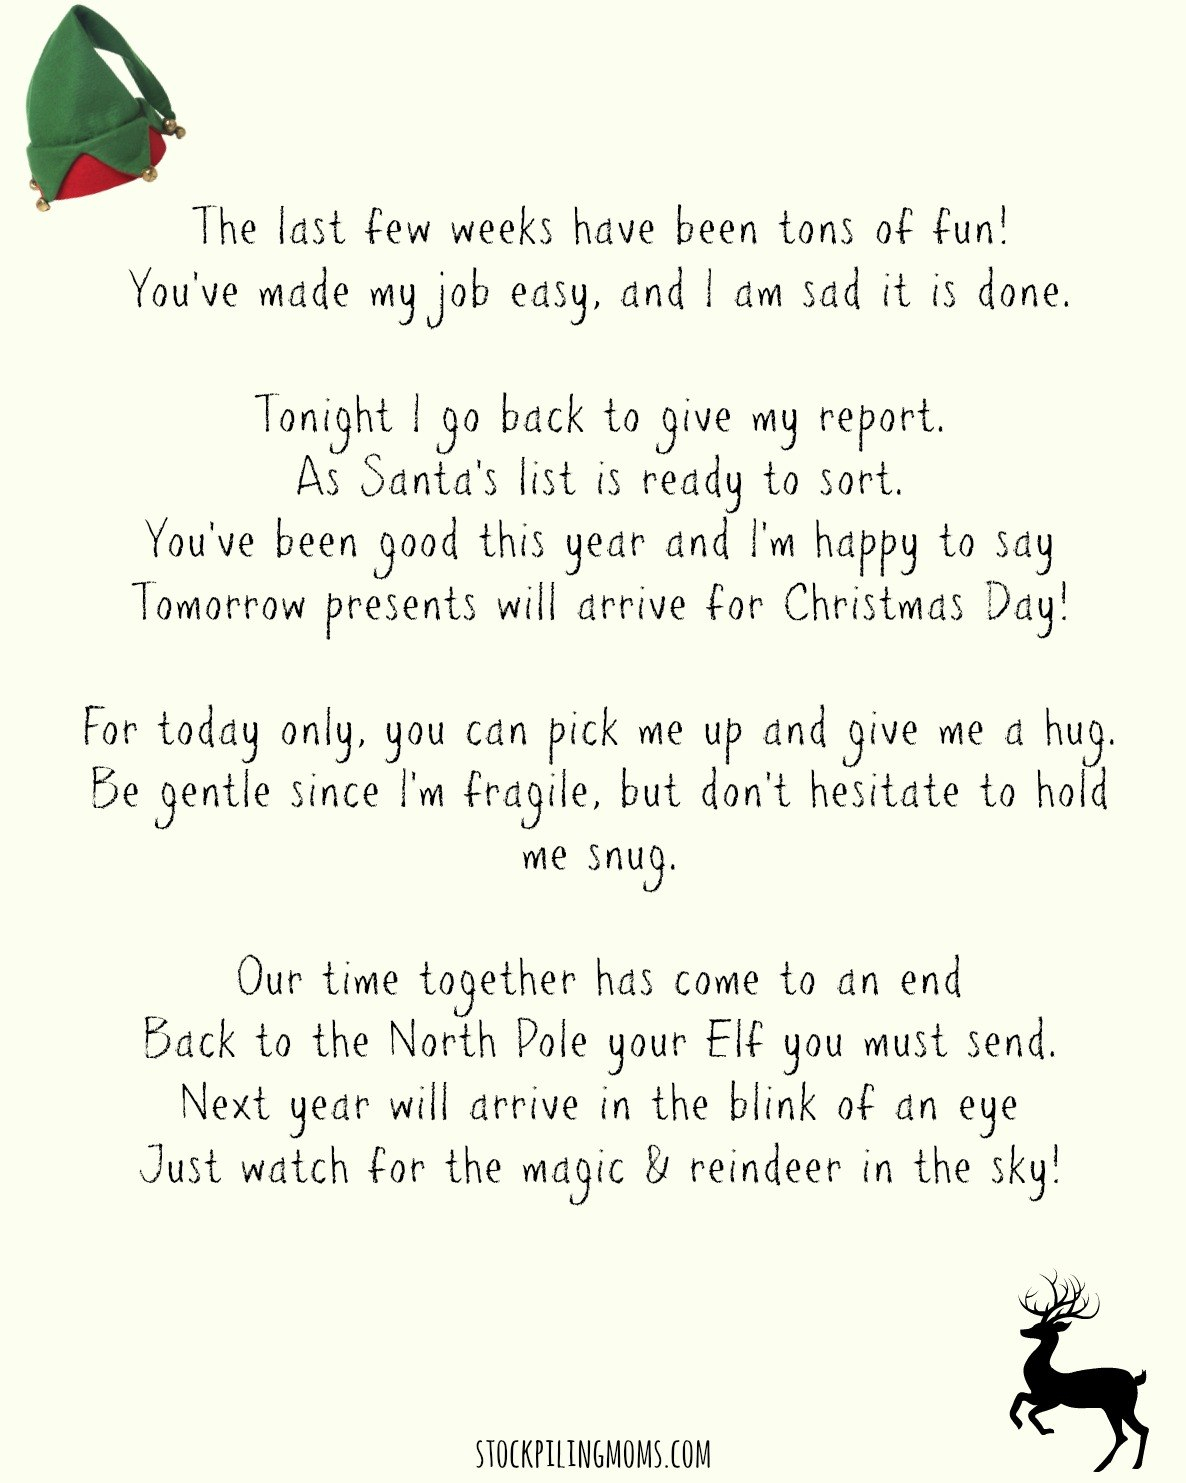 Elf On A Shelf Goodbye Letter Printable  Stockpiling Moms™ With Regard To Goodbye Letter From Elf On The Shelf Template